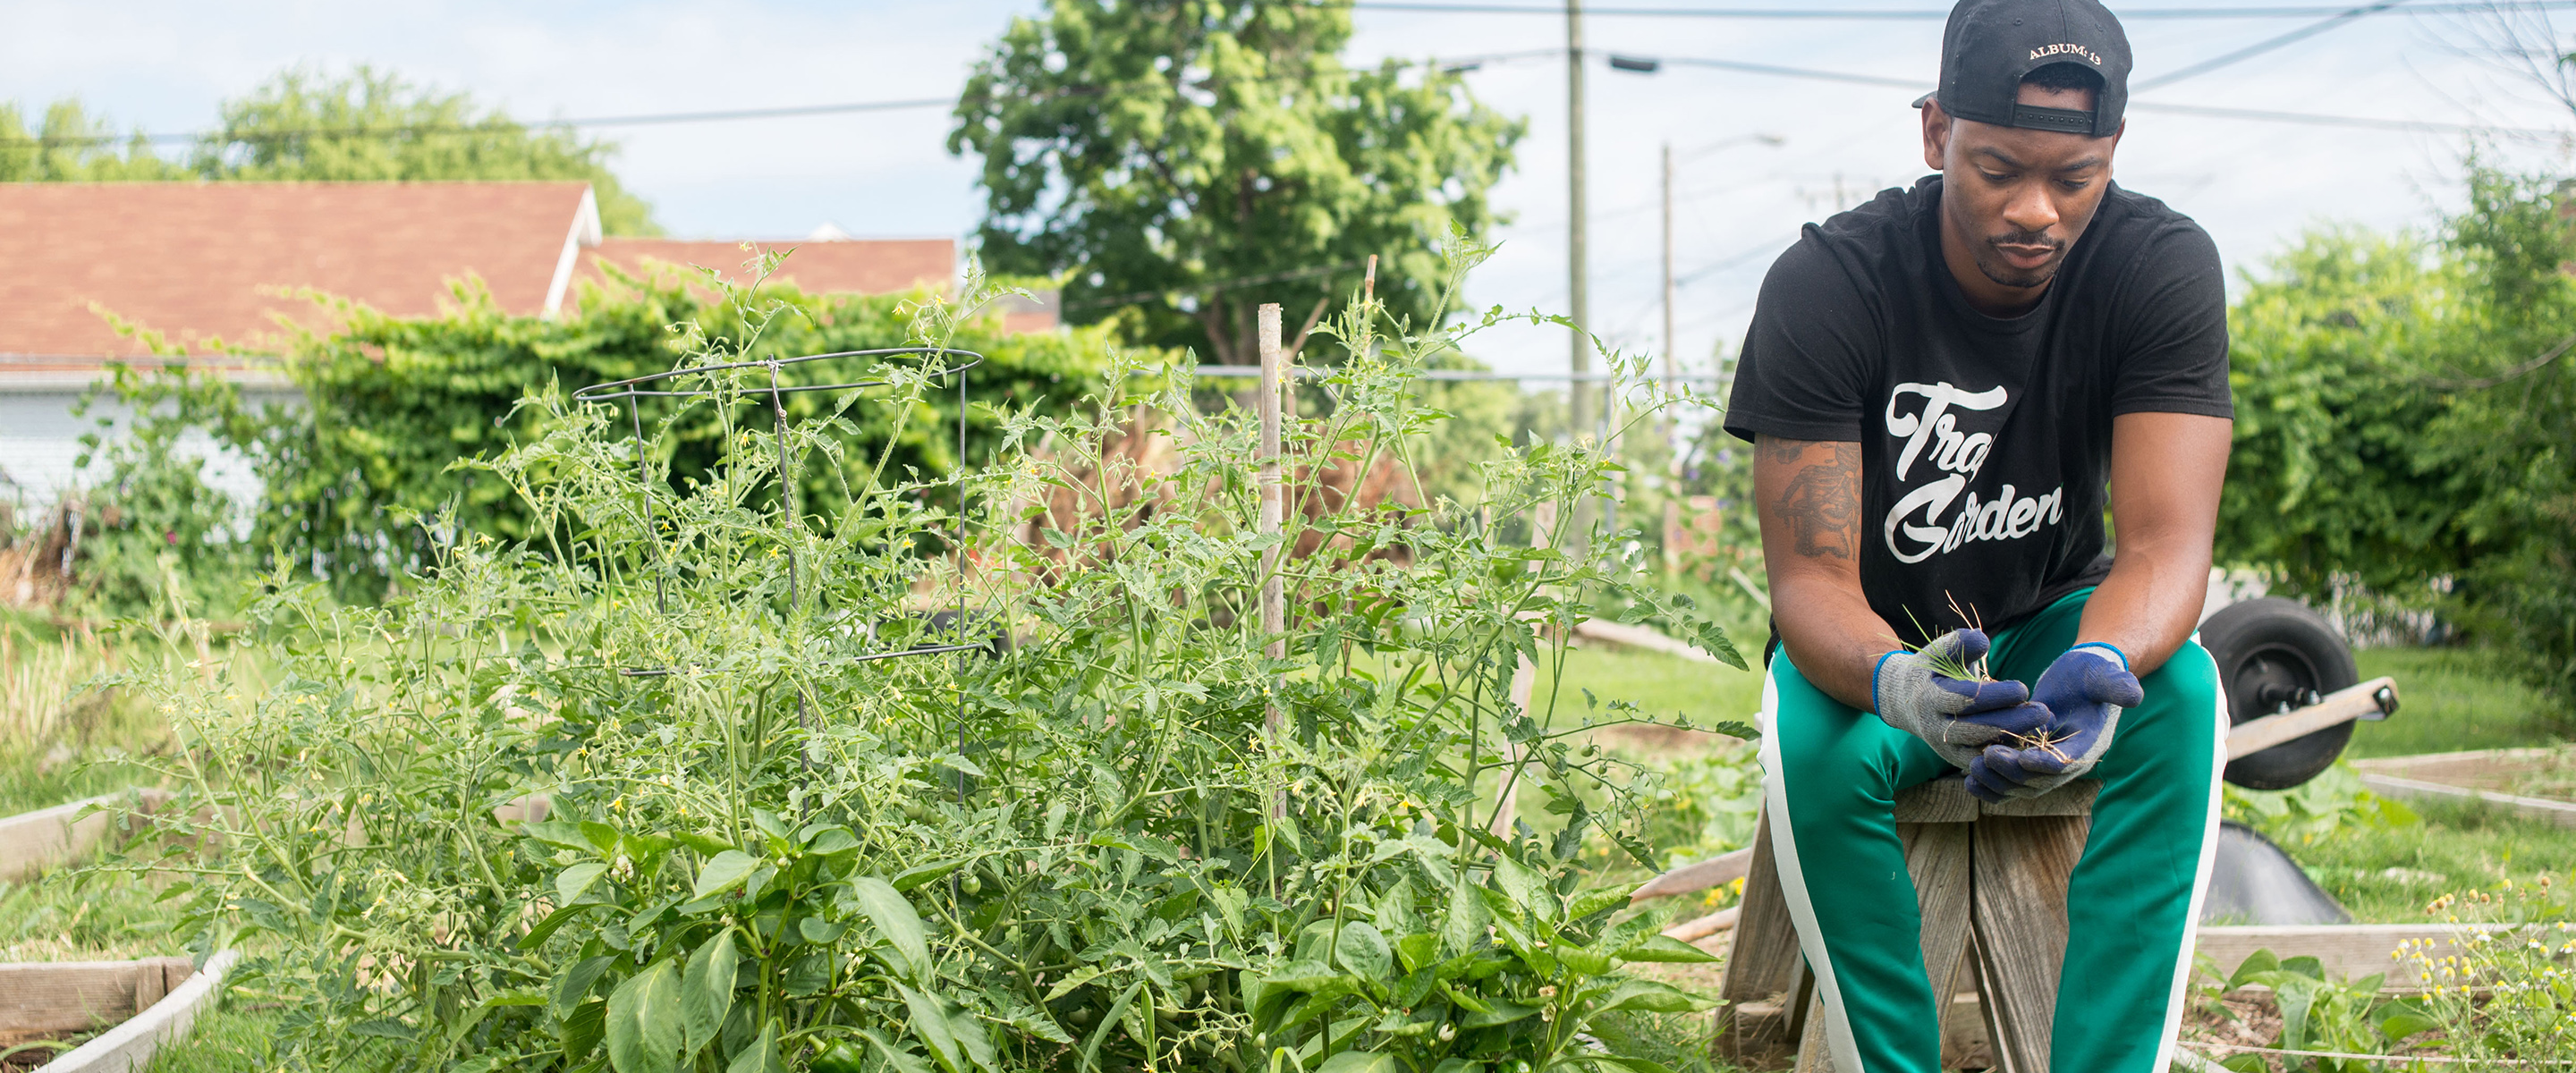 Hungry for Vegetables (and Change) in Nashville's Trap Garden